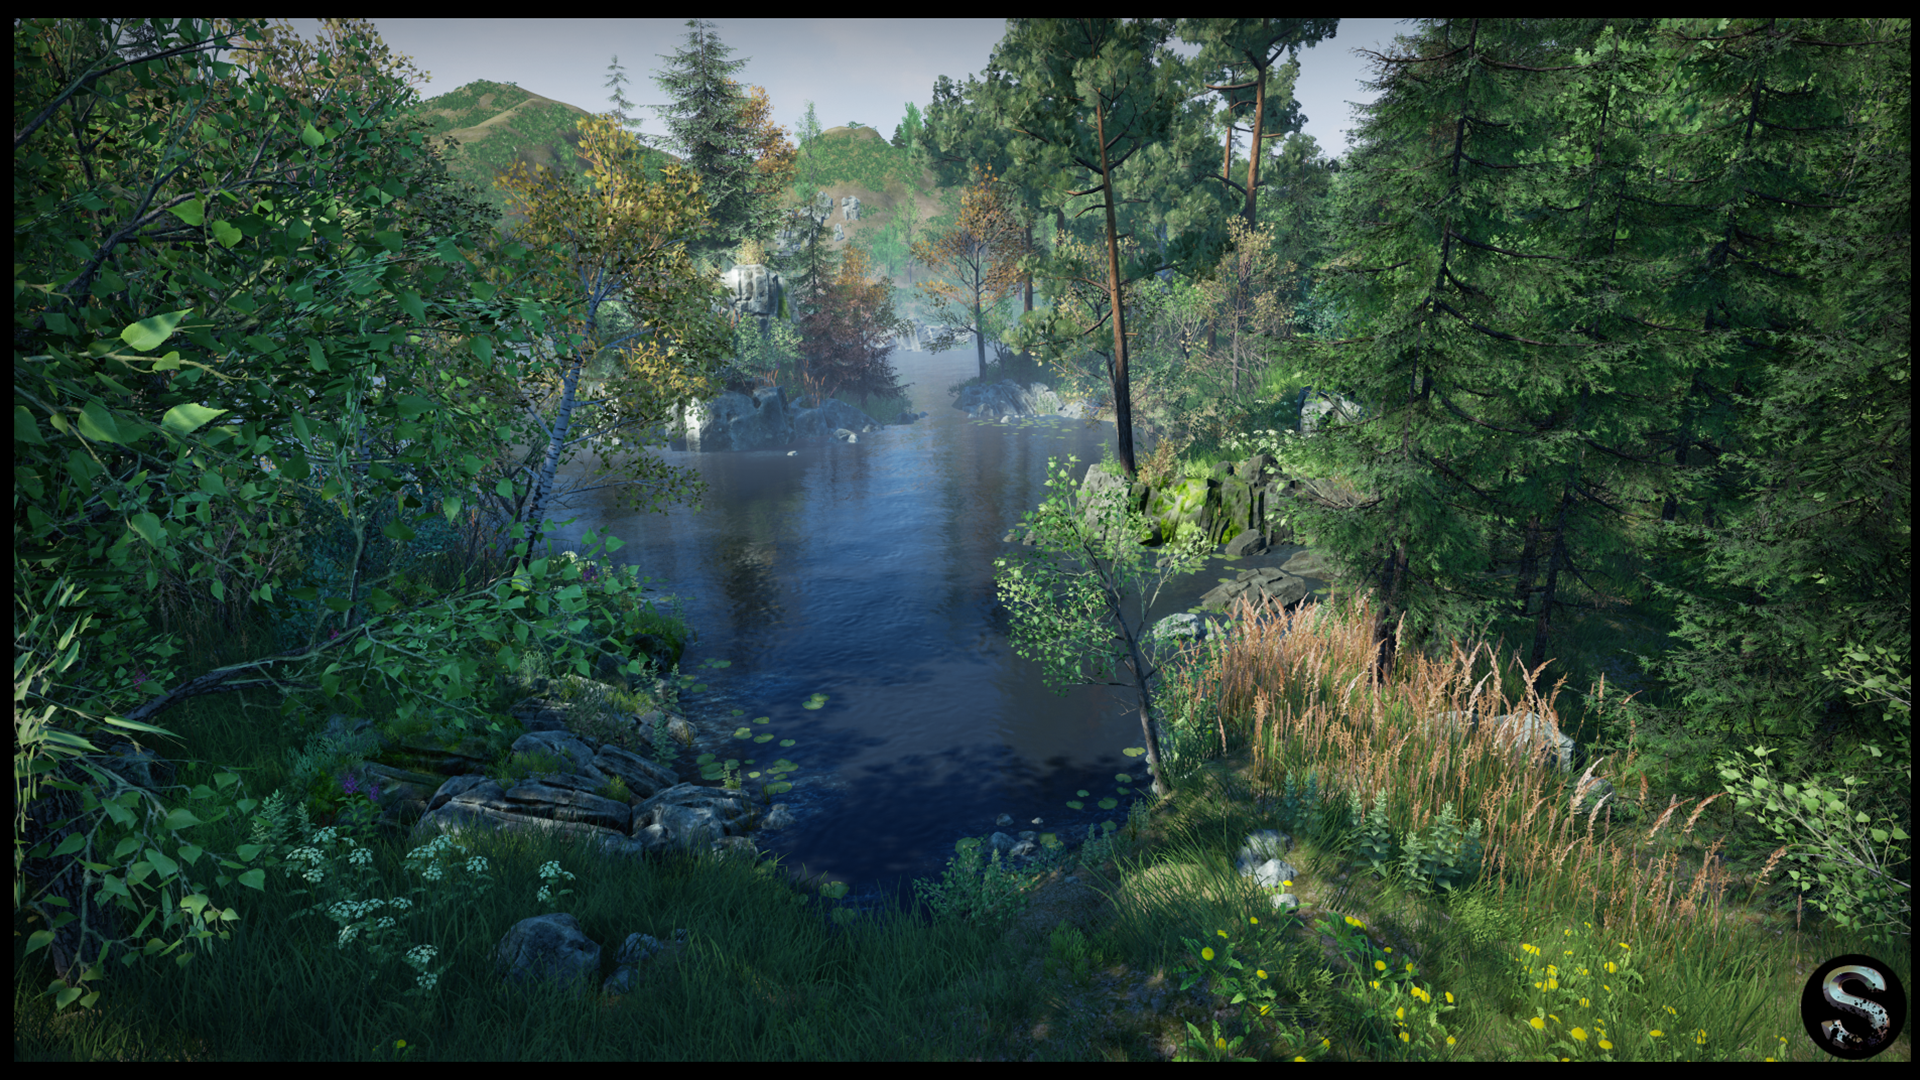 Nature Package by SilverTm in Environments - UE4 Marketplace